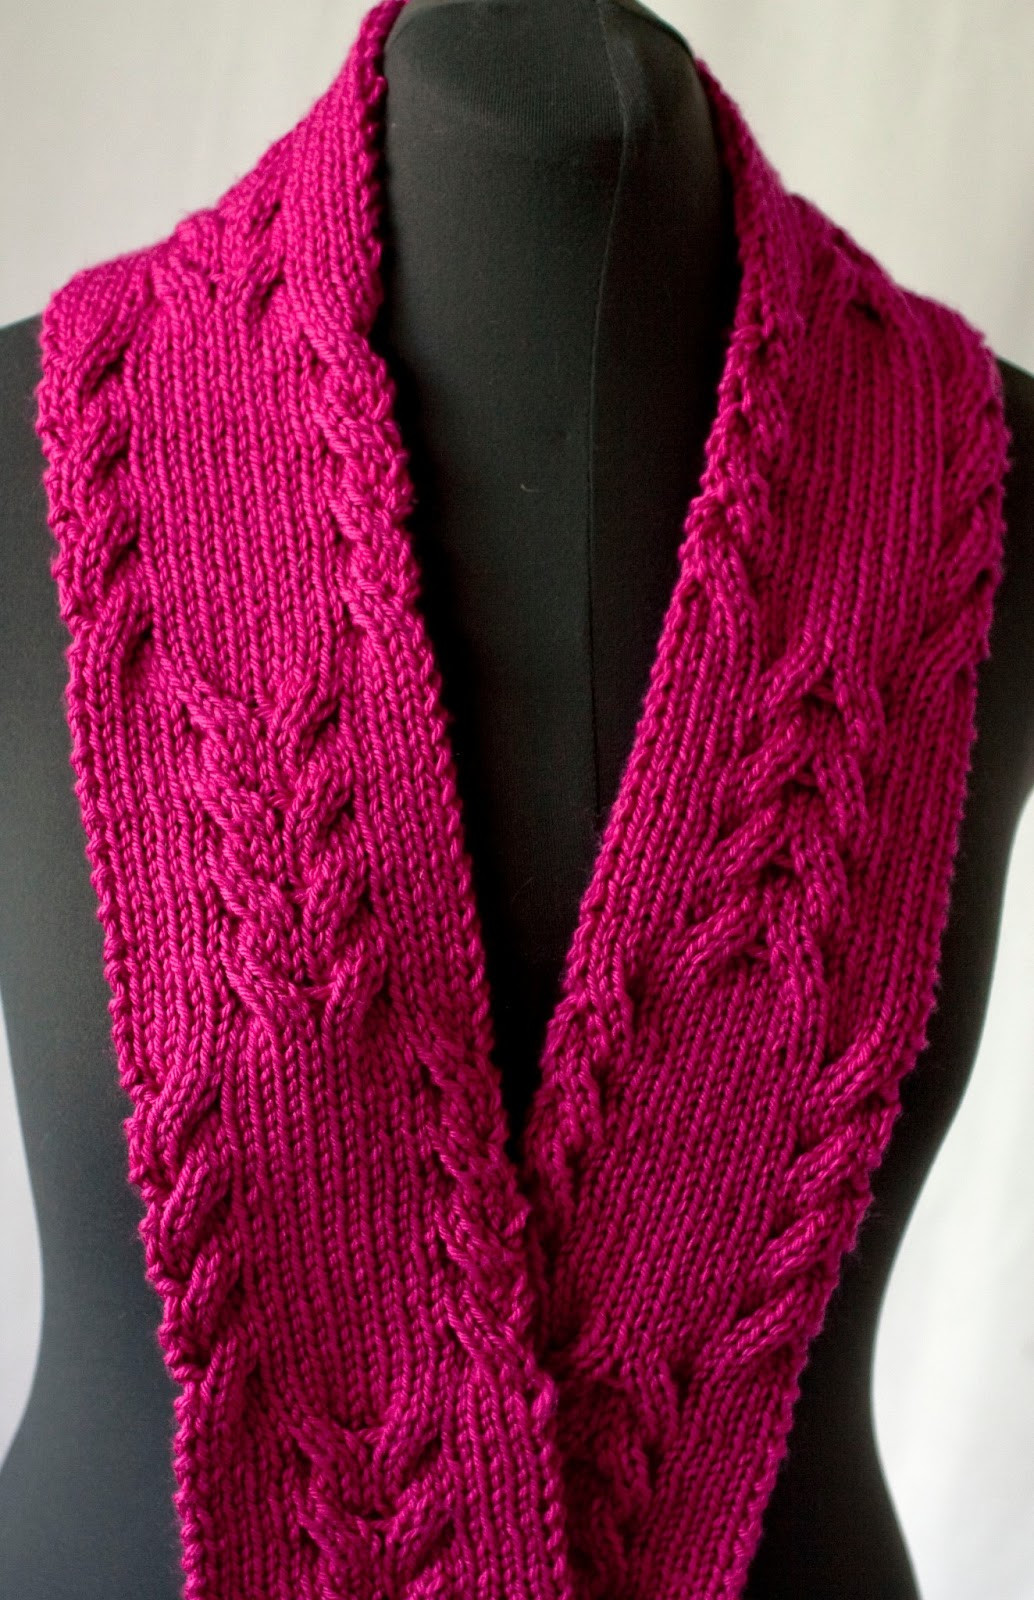 Crochet Cable Scarf Inspirational Reversible Scarf Knitting Patterns Of Incredible 40 Photos Crochet Cable Scarf